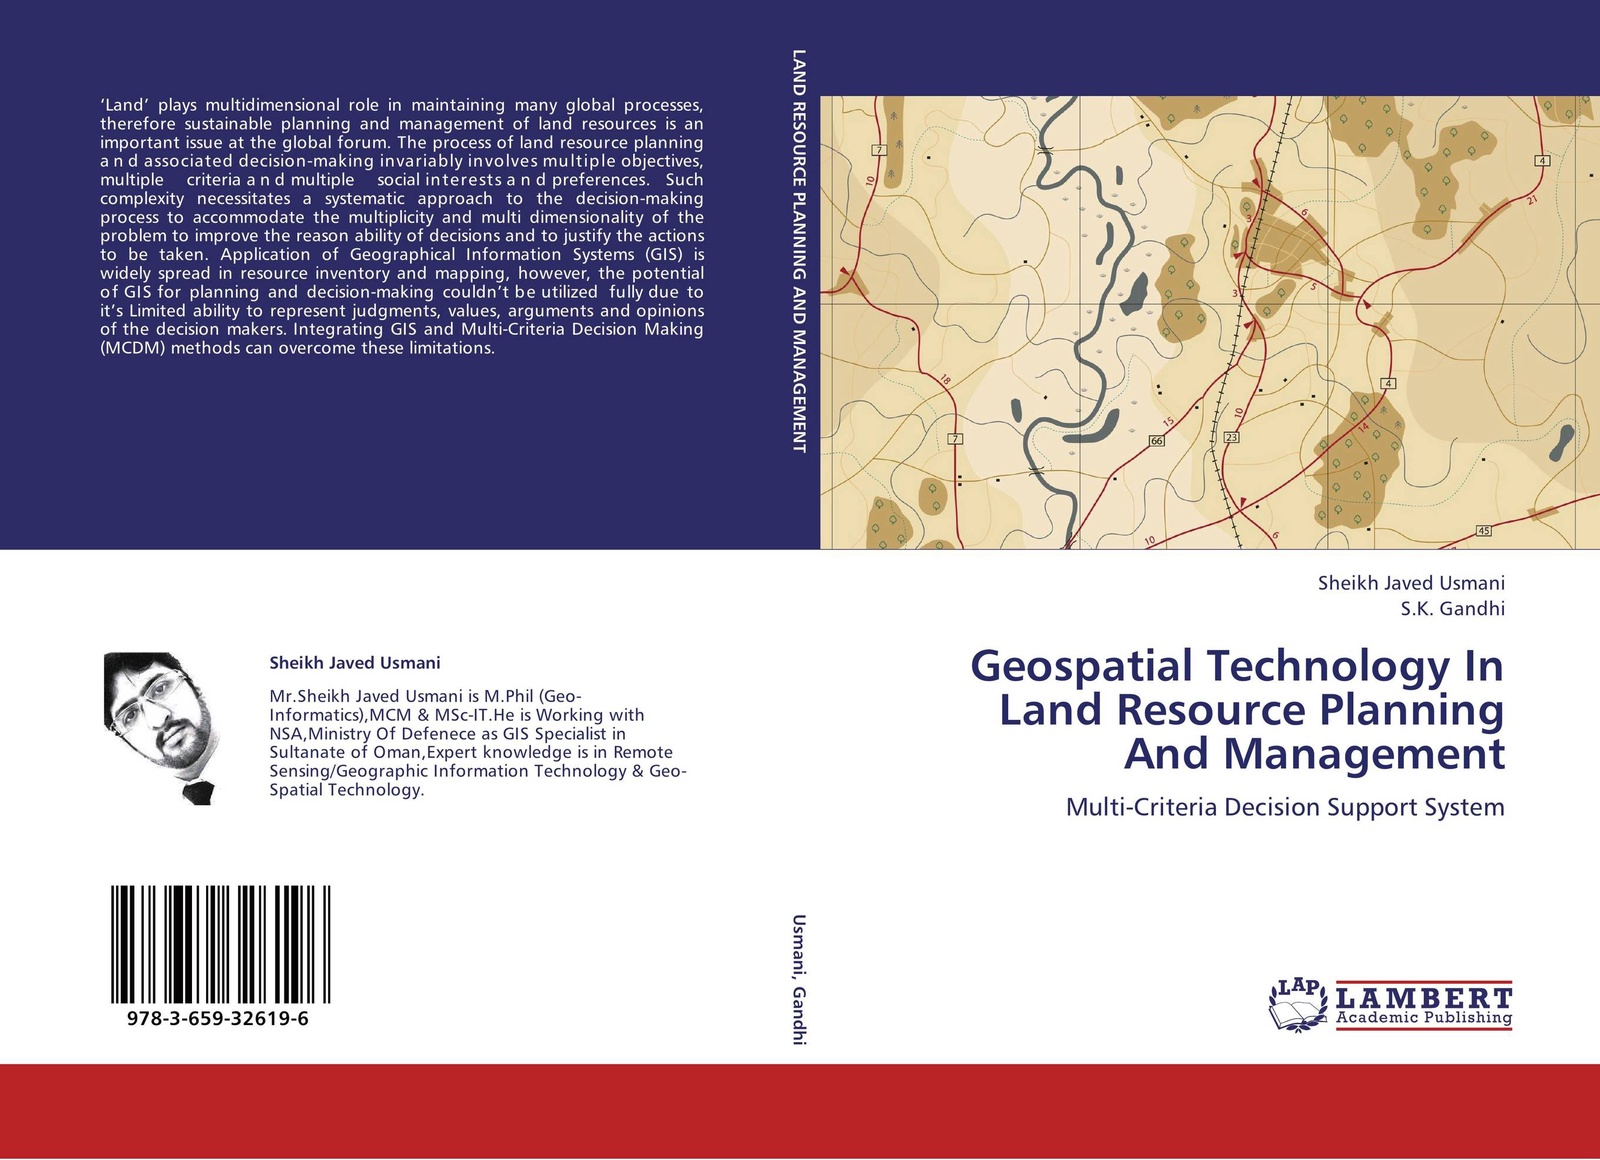 Sheikh Javed Usmani and S.K. Gandhi Geospatial Technology In Land Resource Planning And Management